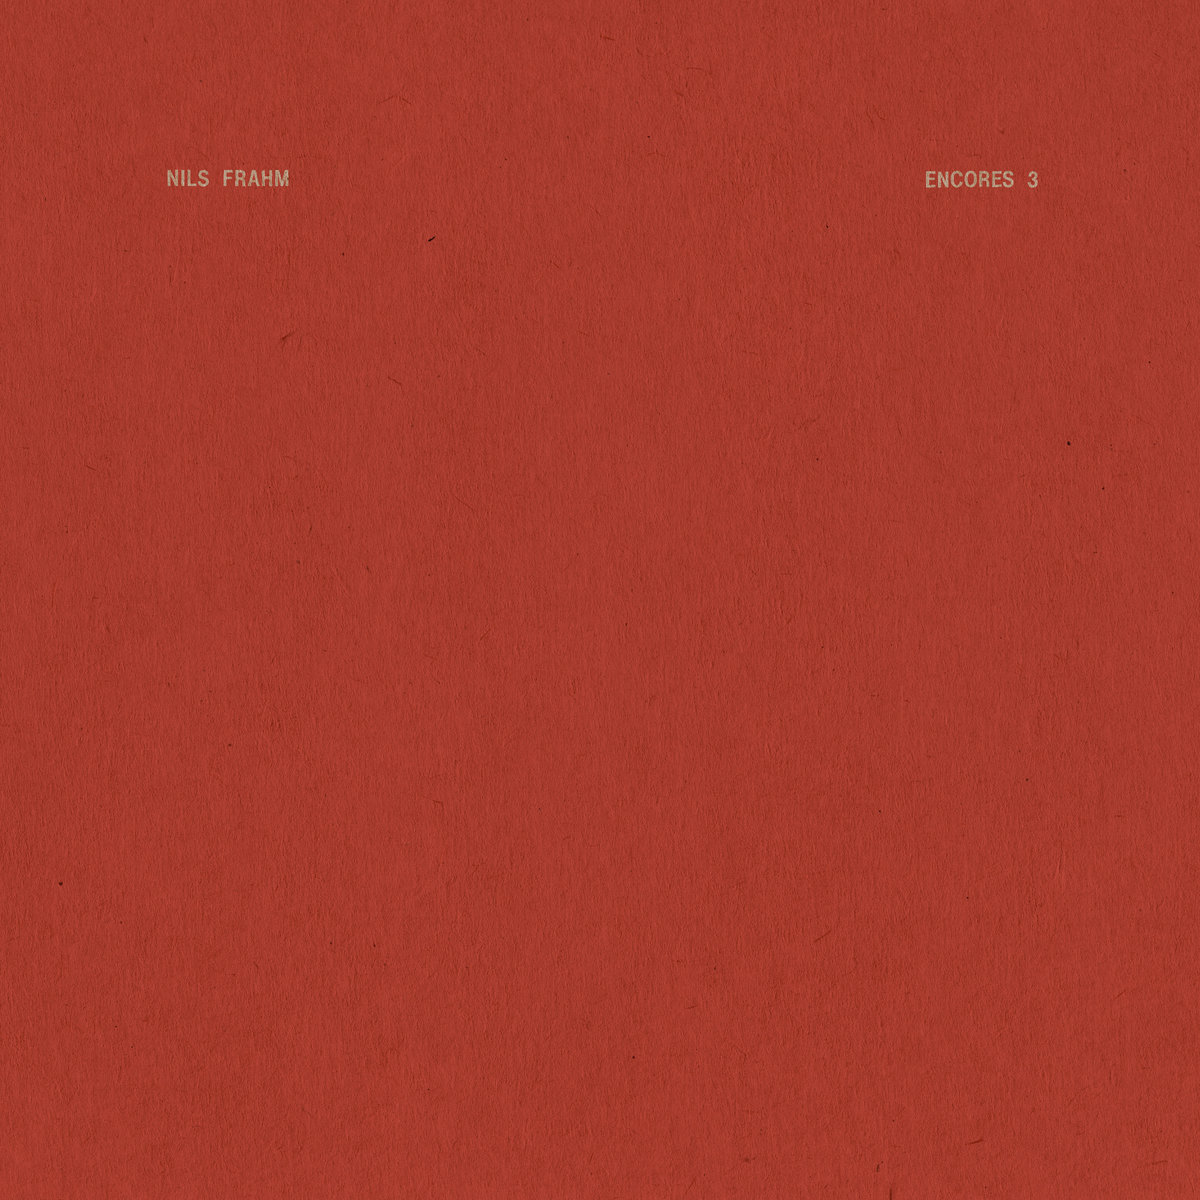 Nils Frahm Encores 3 EP cover artwork